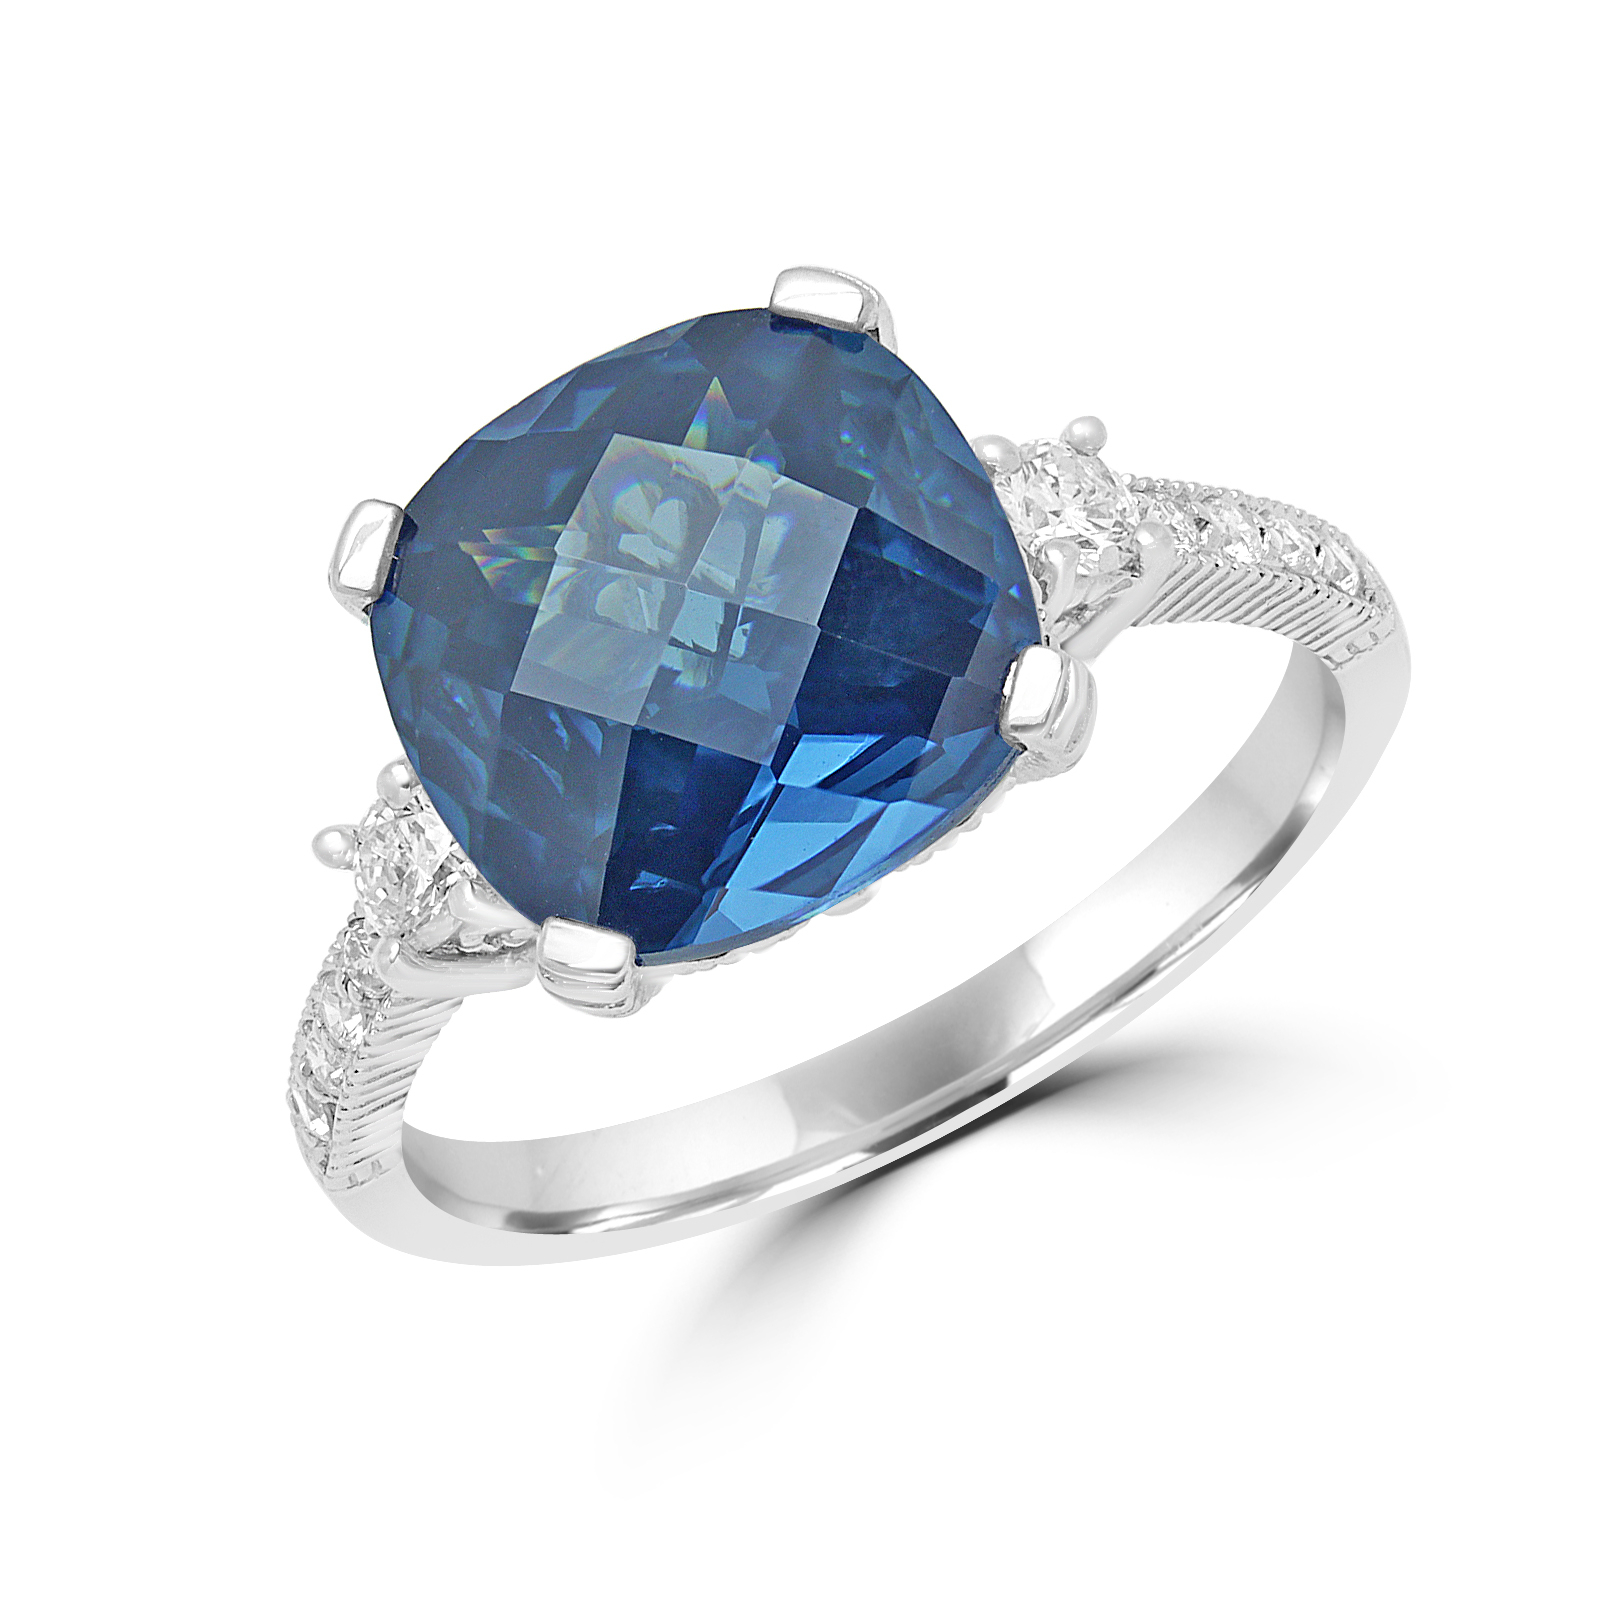 Cushion Cut Sapphire Color Cz & Diamond Ring In 14K White Gold Throughout Cushion Cut Sapphire Rings (View 11 of 25)